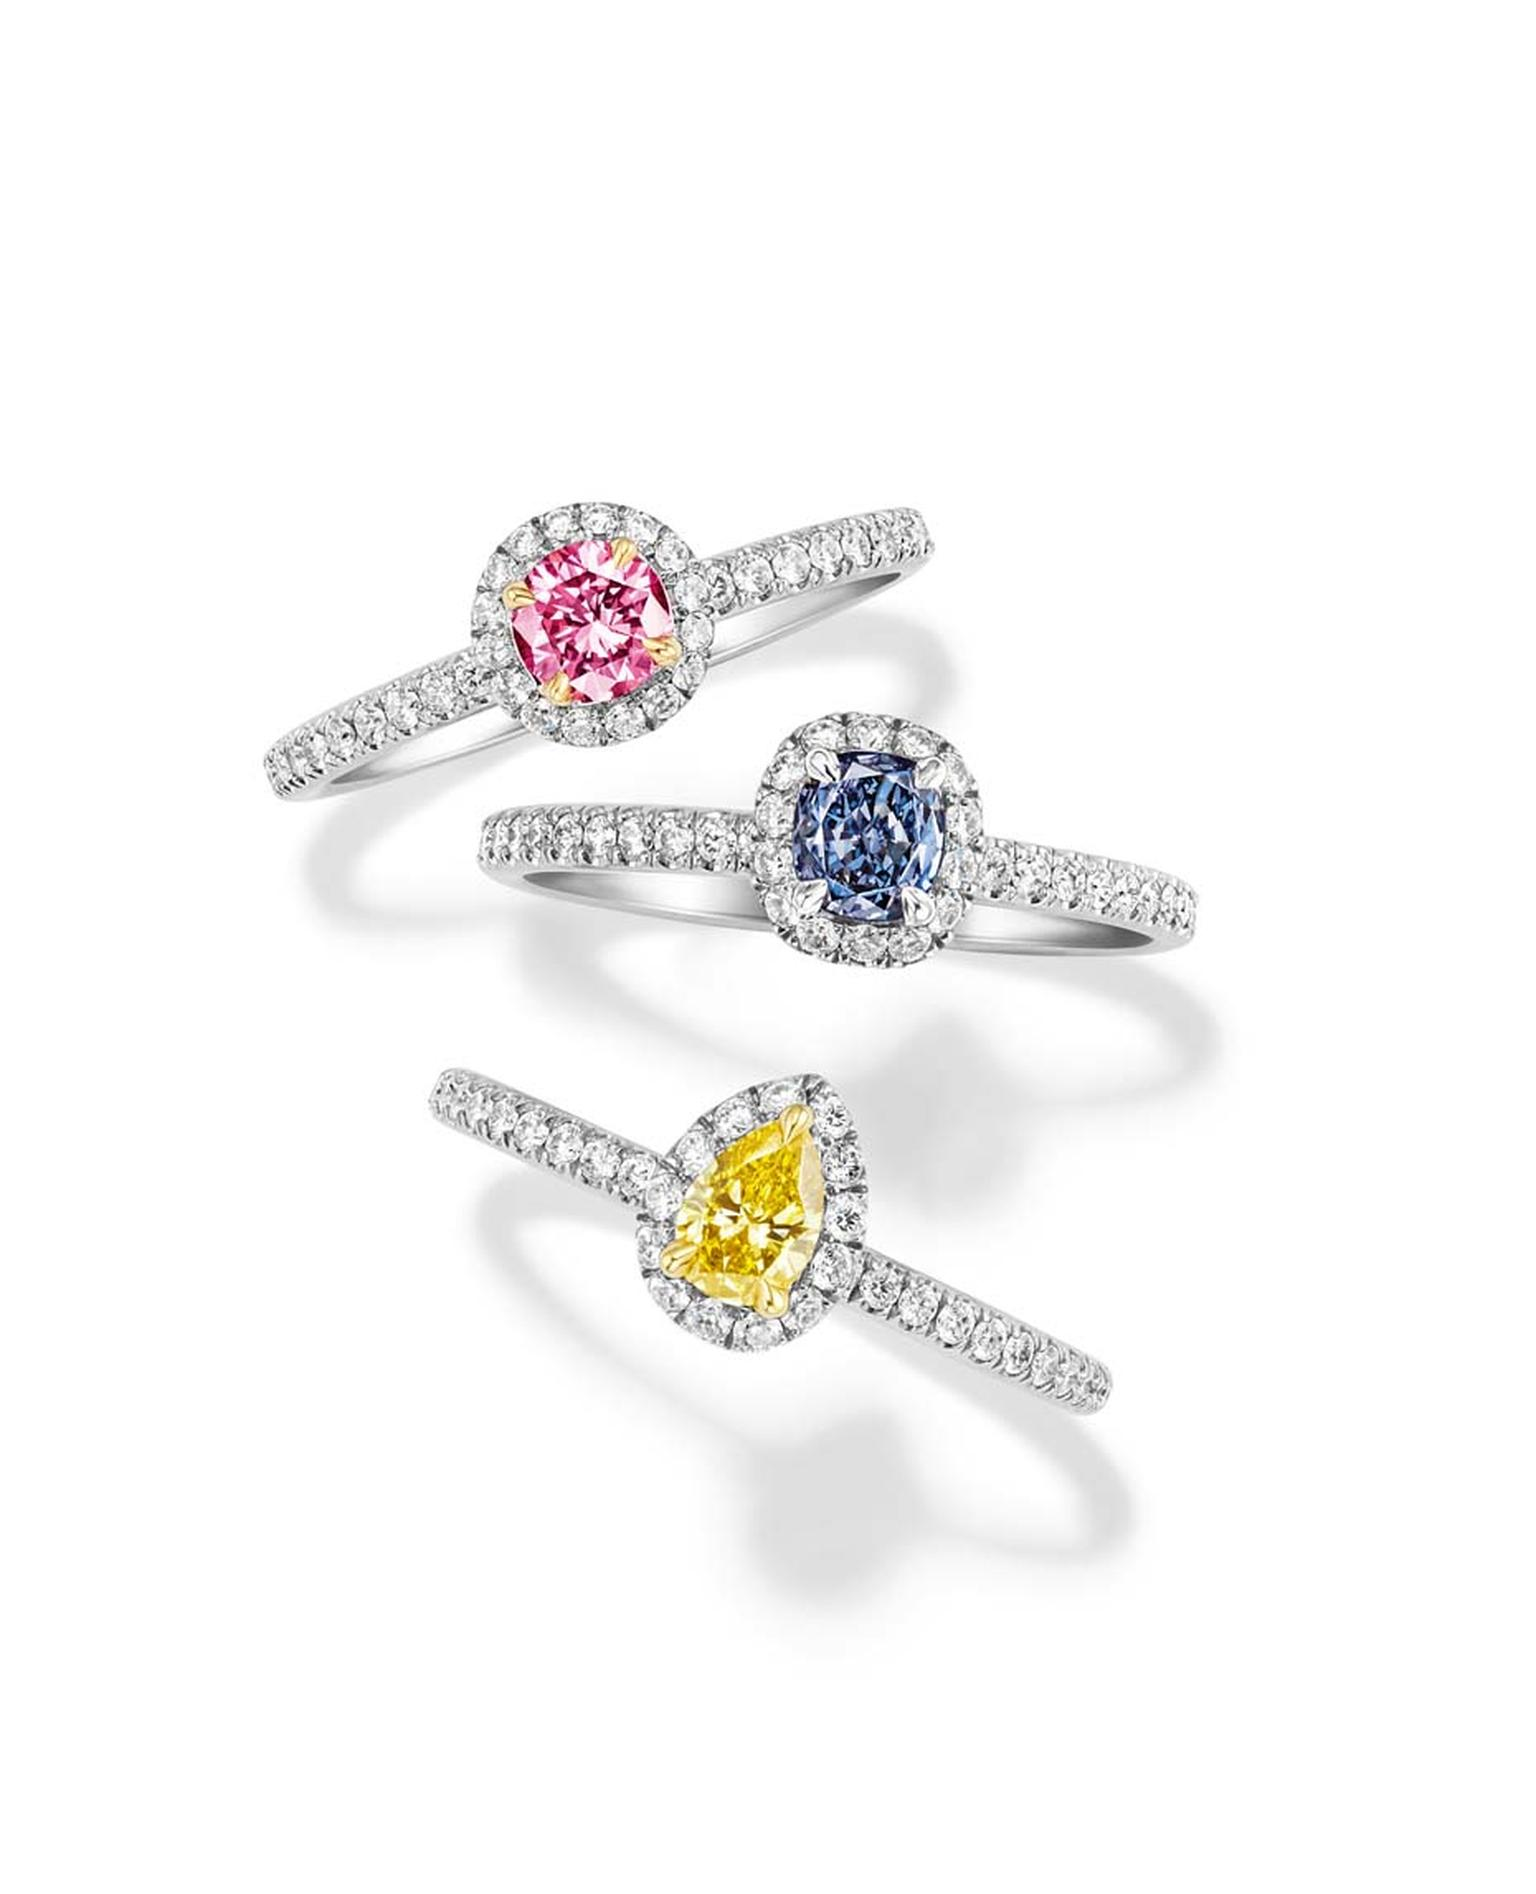 Harry Winston coloured diamond engagement rings with pavé diamonds surrounding the central diamond and band.